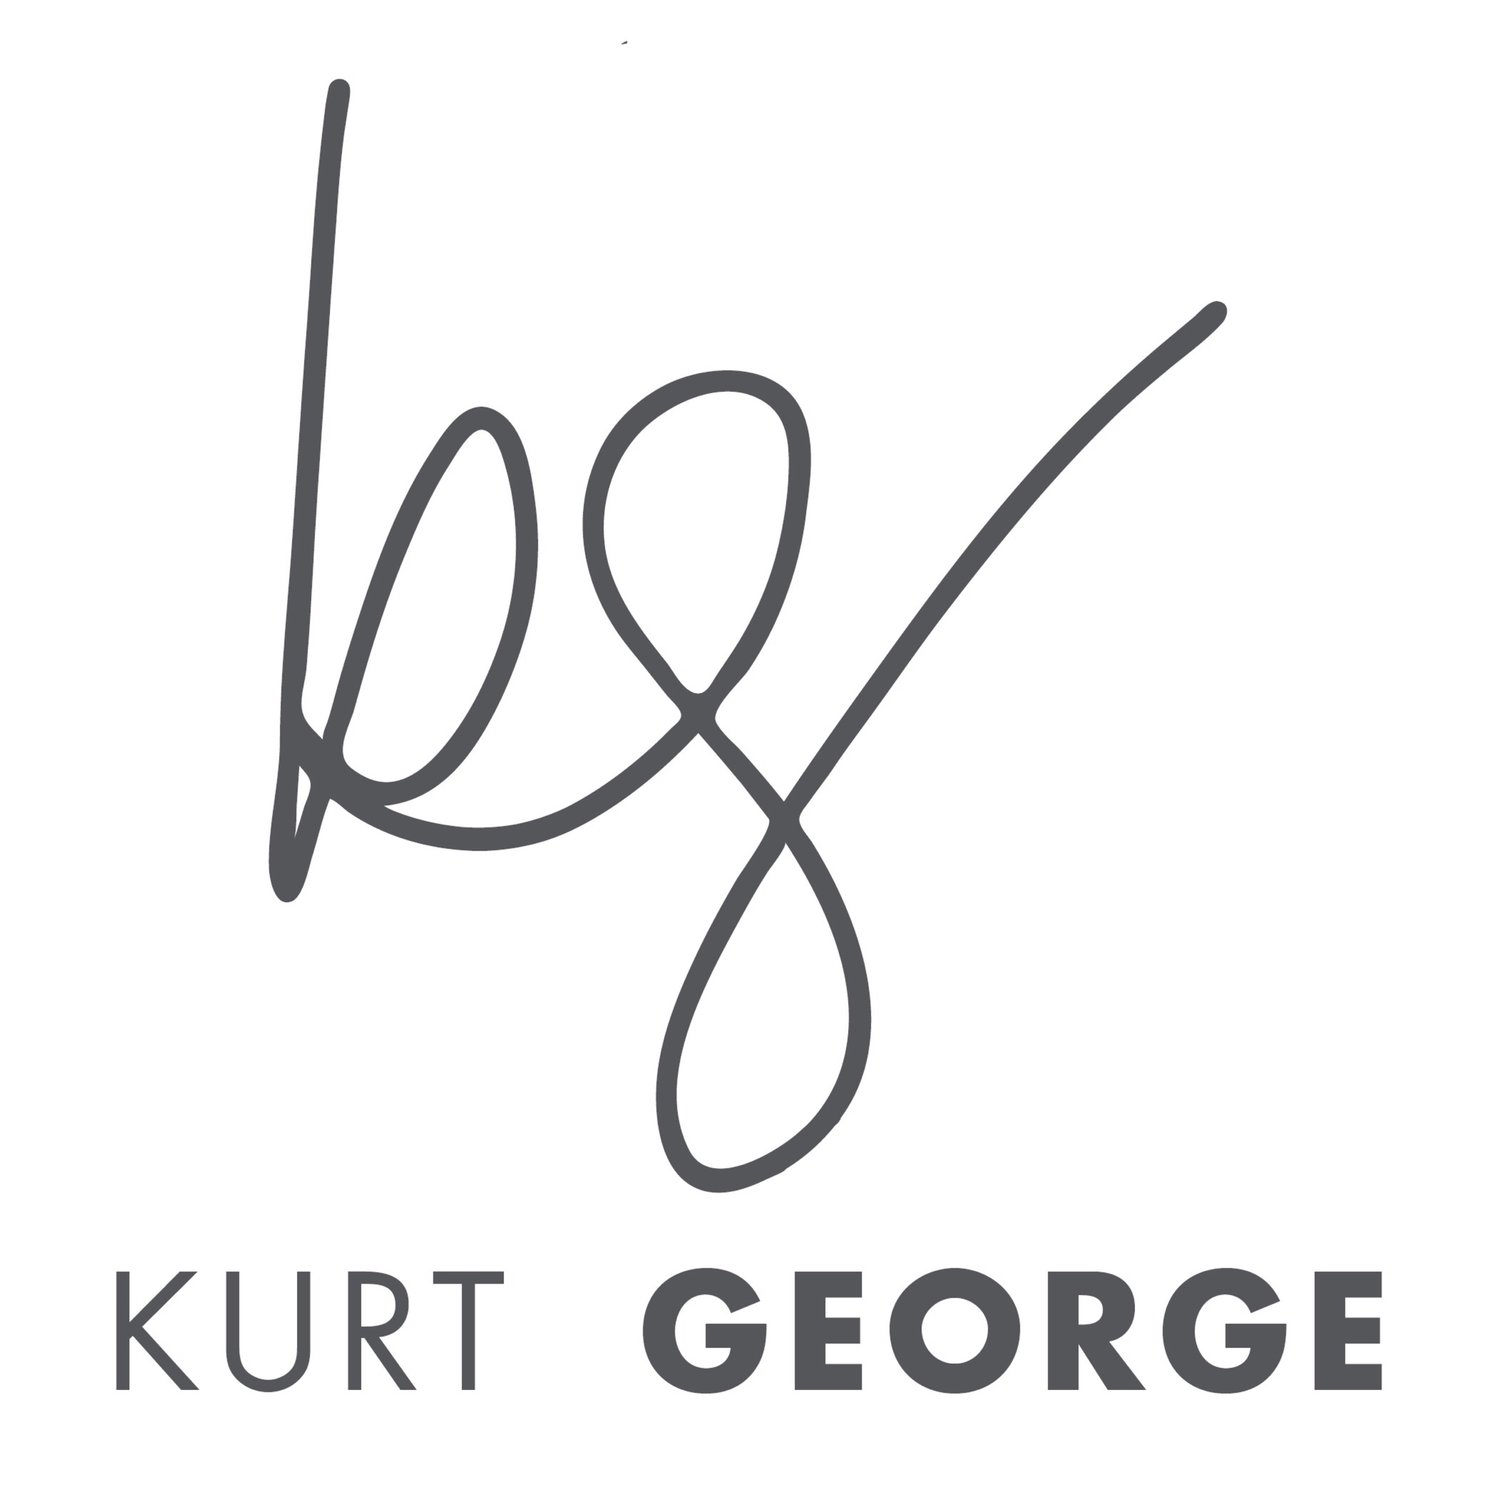 Kurt George Photography